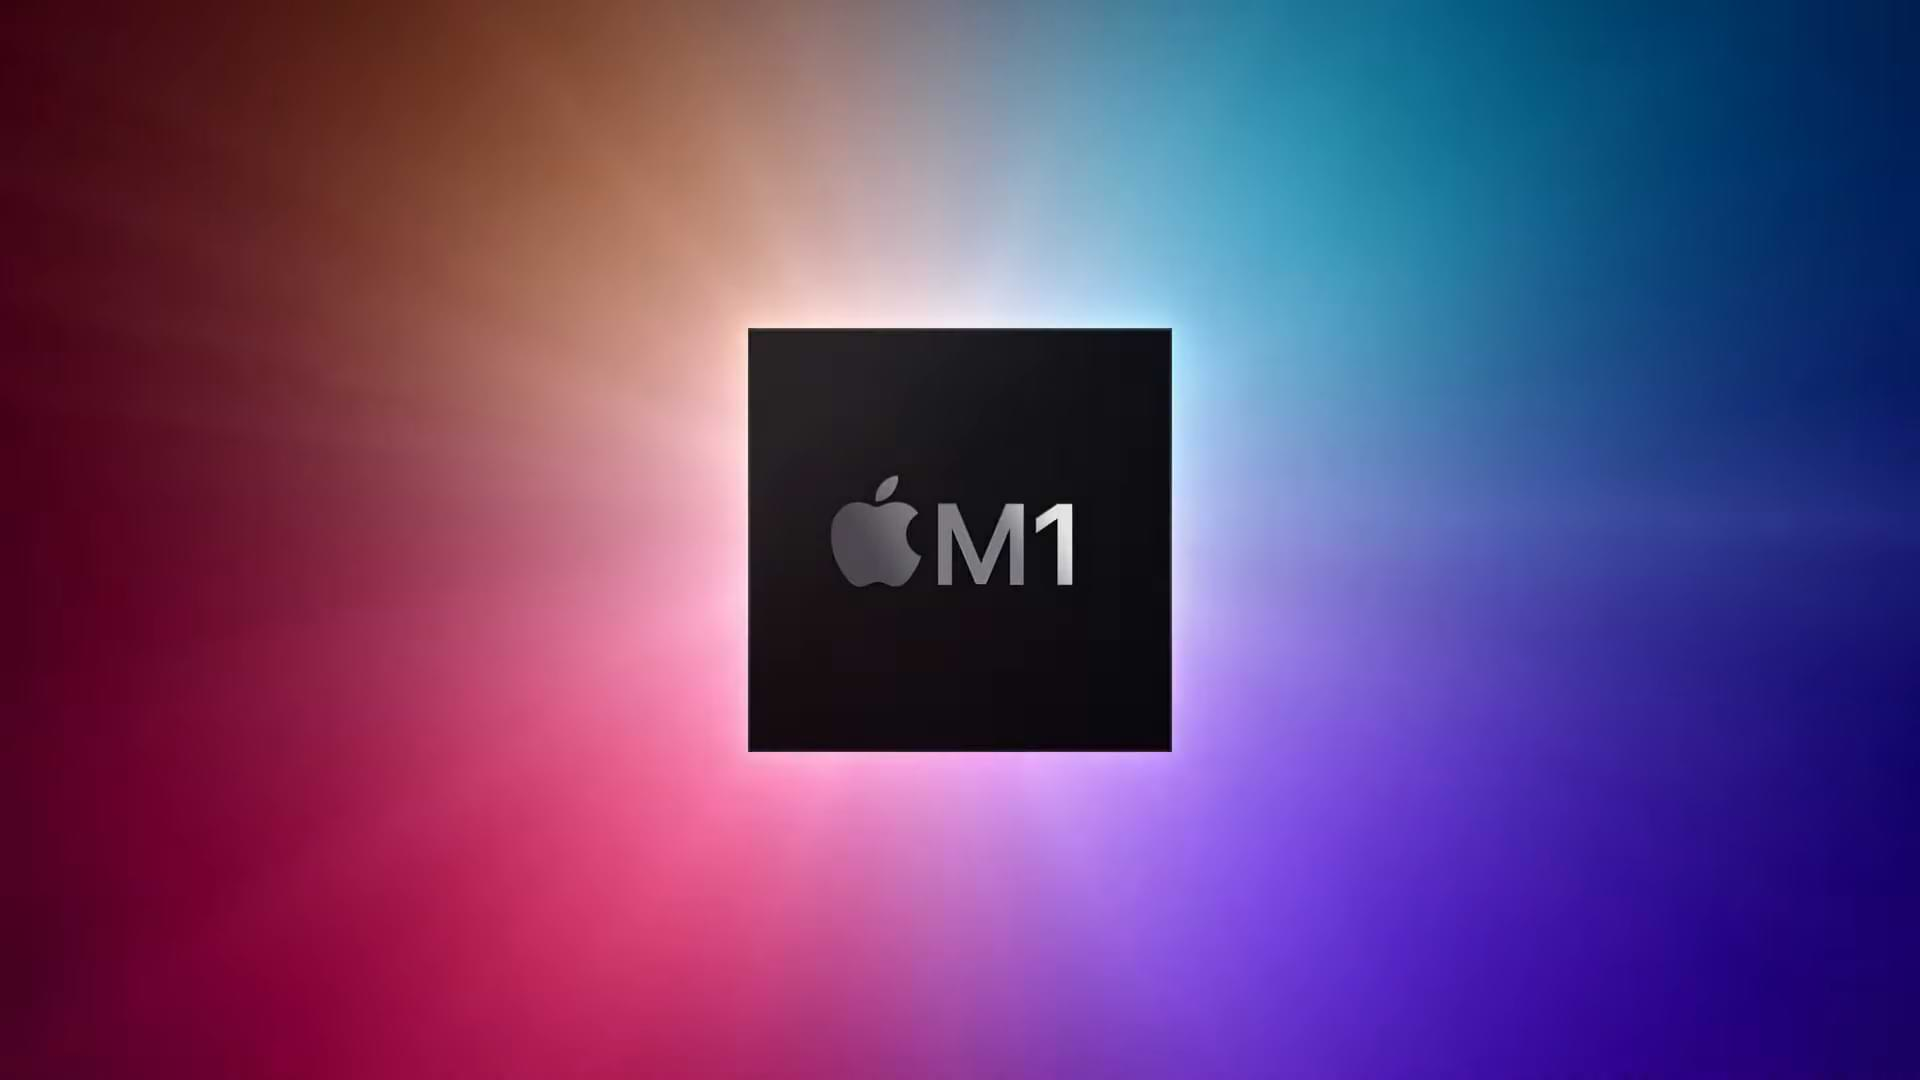 A Mysterious Malware Found on Mac Devices with Apple M1 Chipset